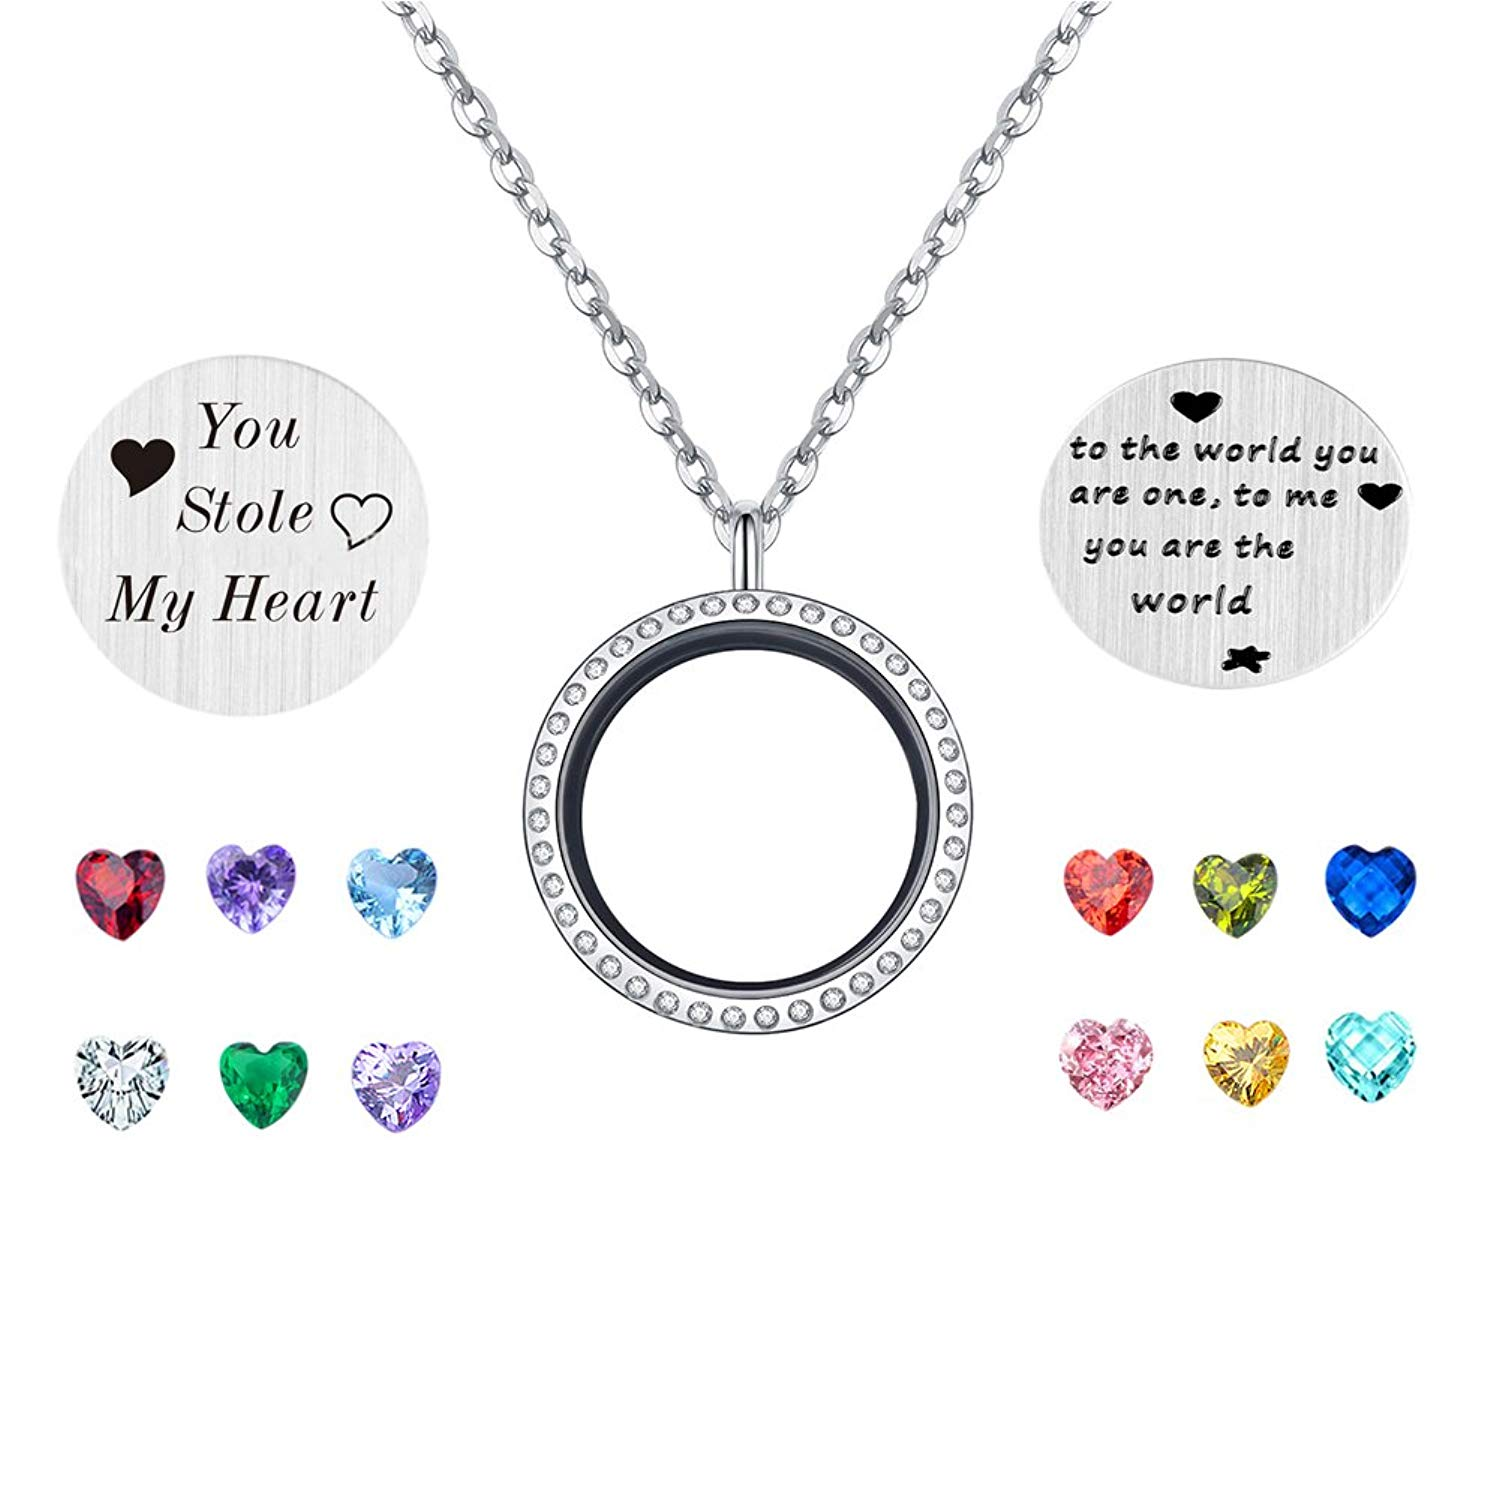 PORPI-JOJO You Stole My Heart Floating Living Memory Lockets Pendant Necklace 30mm Stainless Steel 12 Birthstone